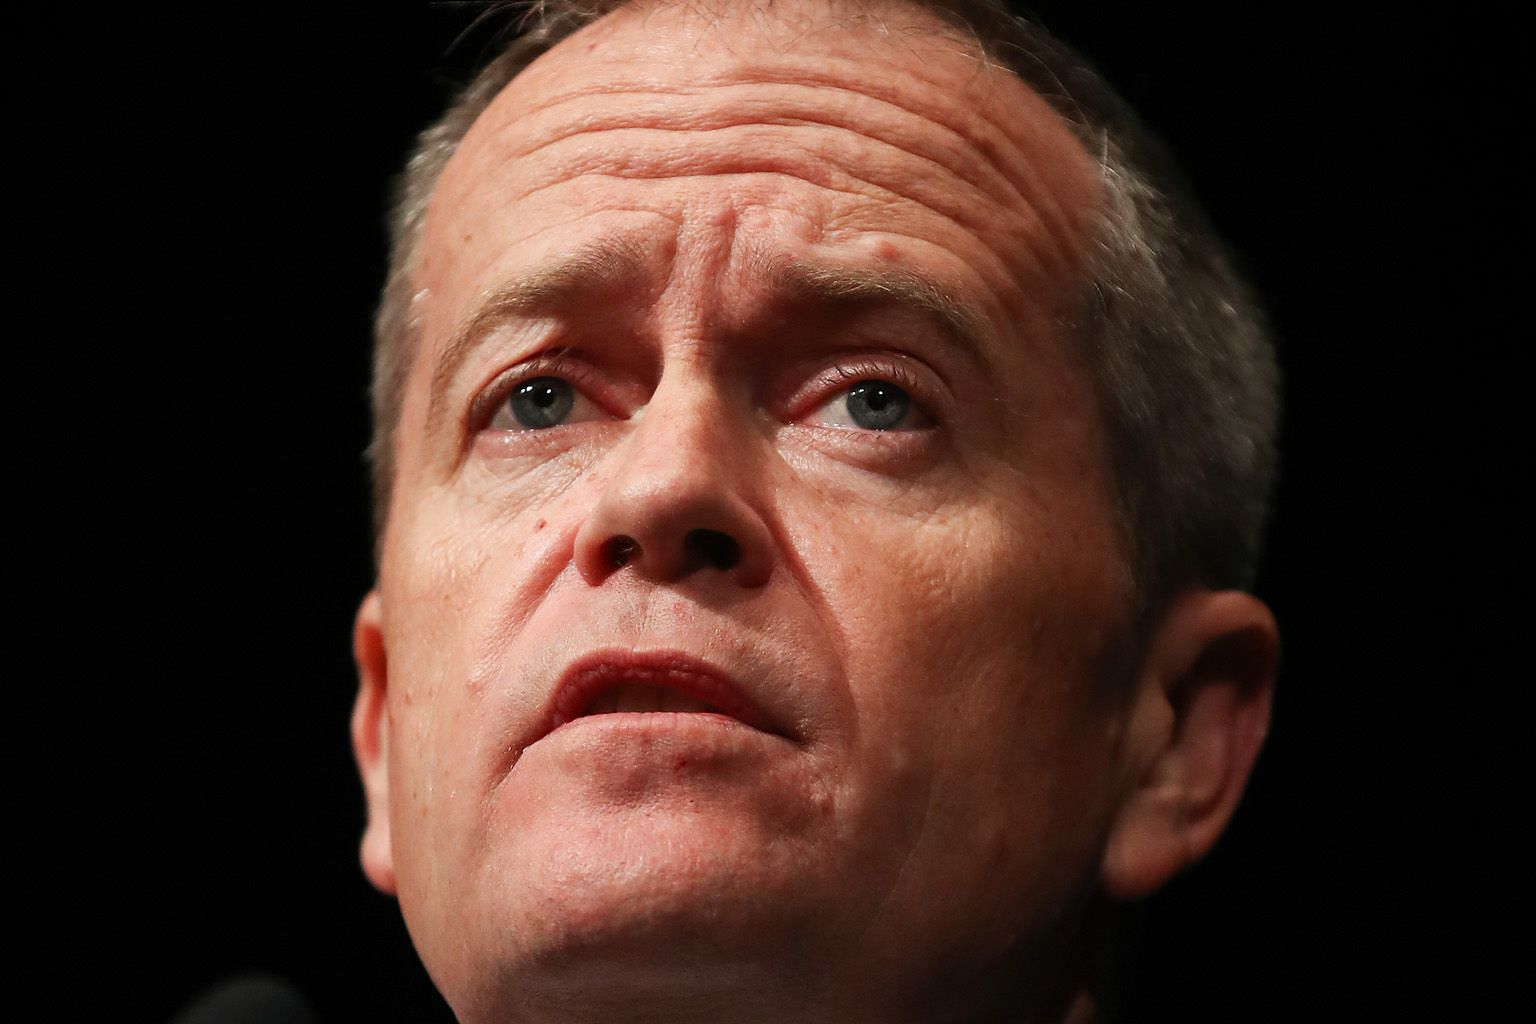 Mr Bill Shorten, once strongly tipped to be Australia's next prime minister, may find himself ditched by his Labor Party ahead of the election.